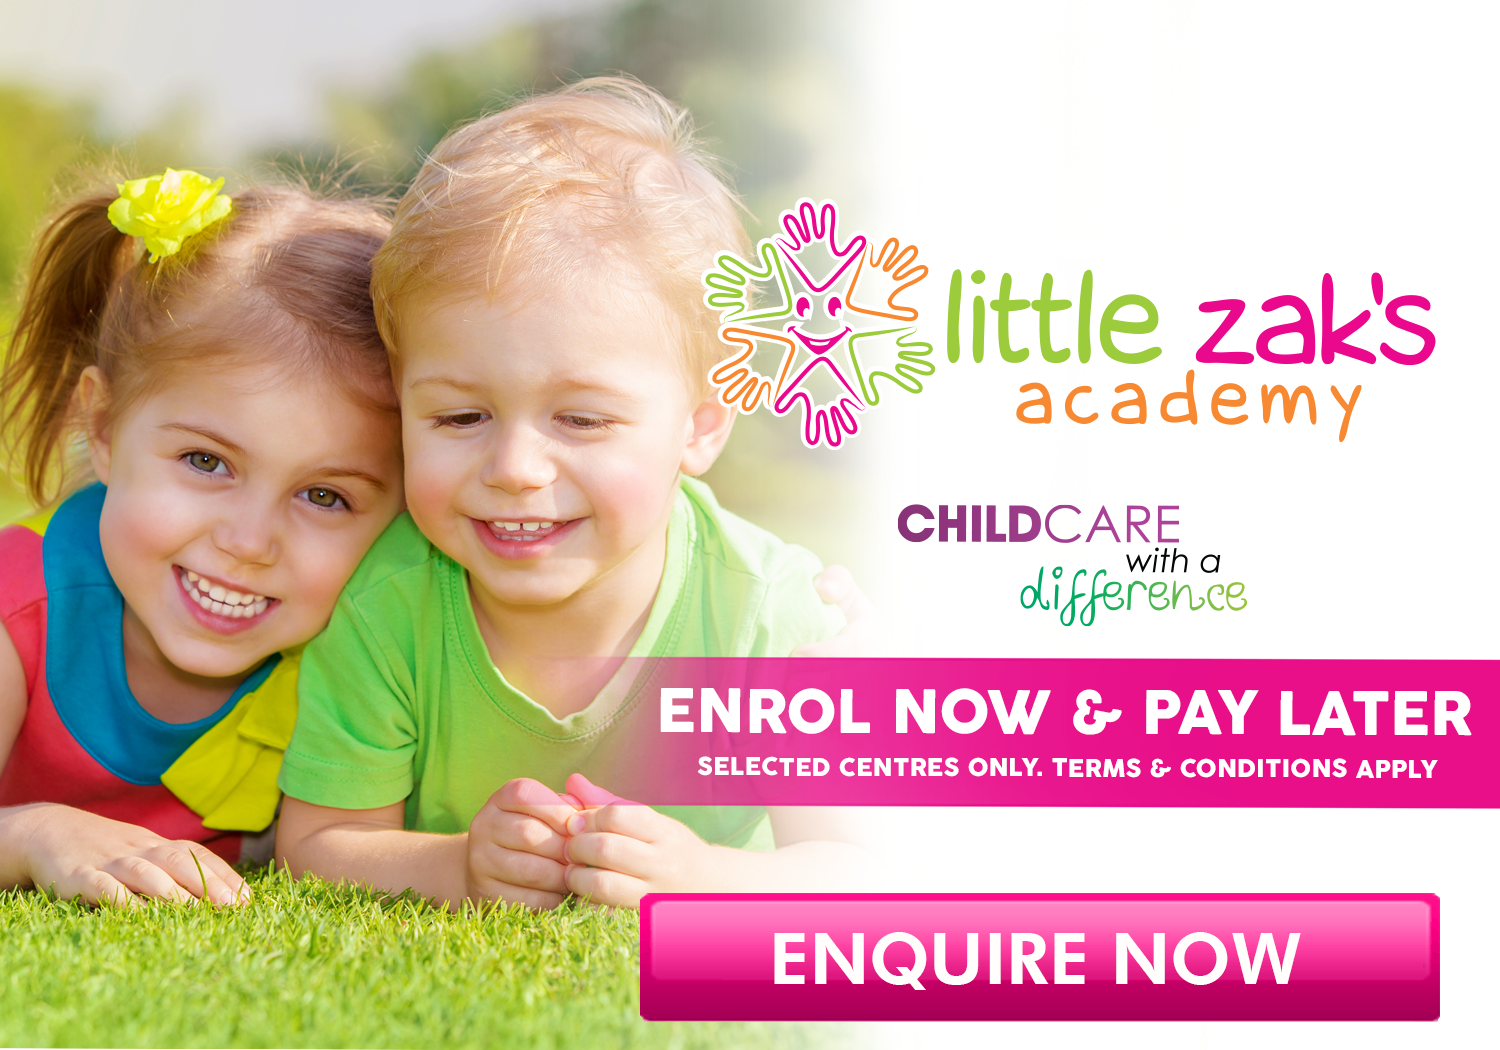 Give Your Child A Bright Future With Childcare